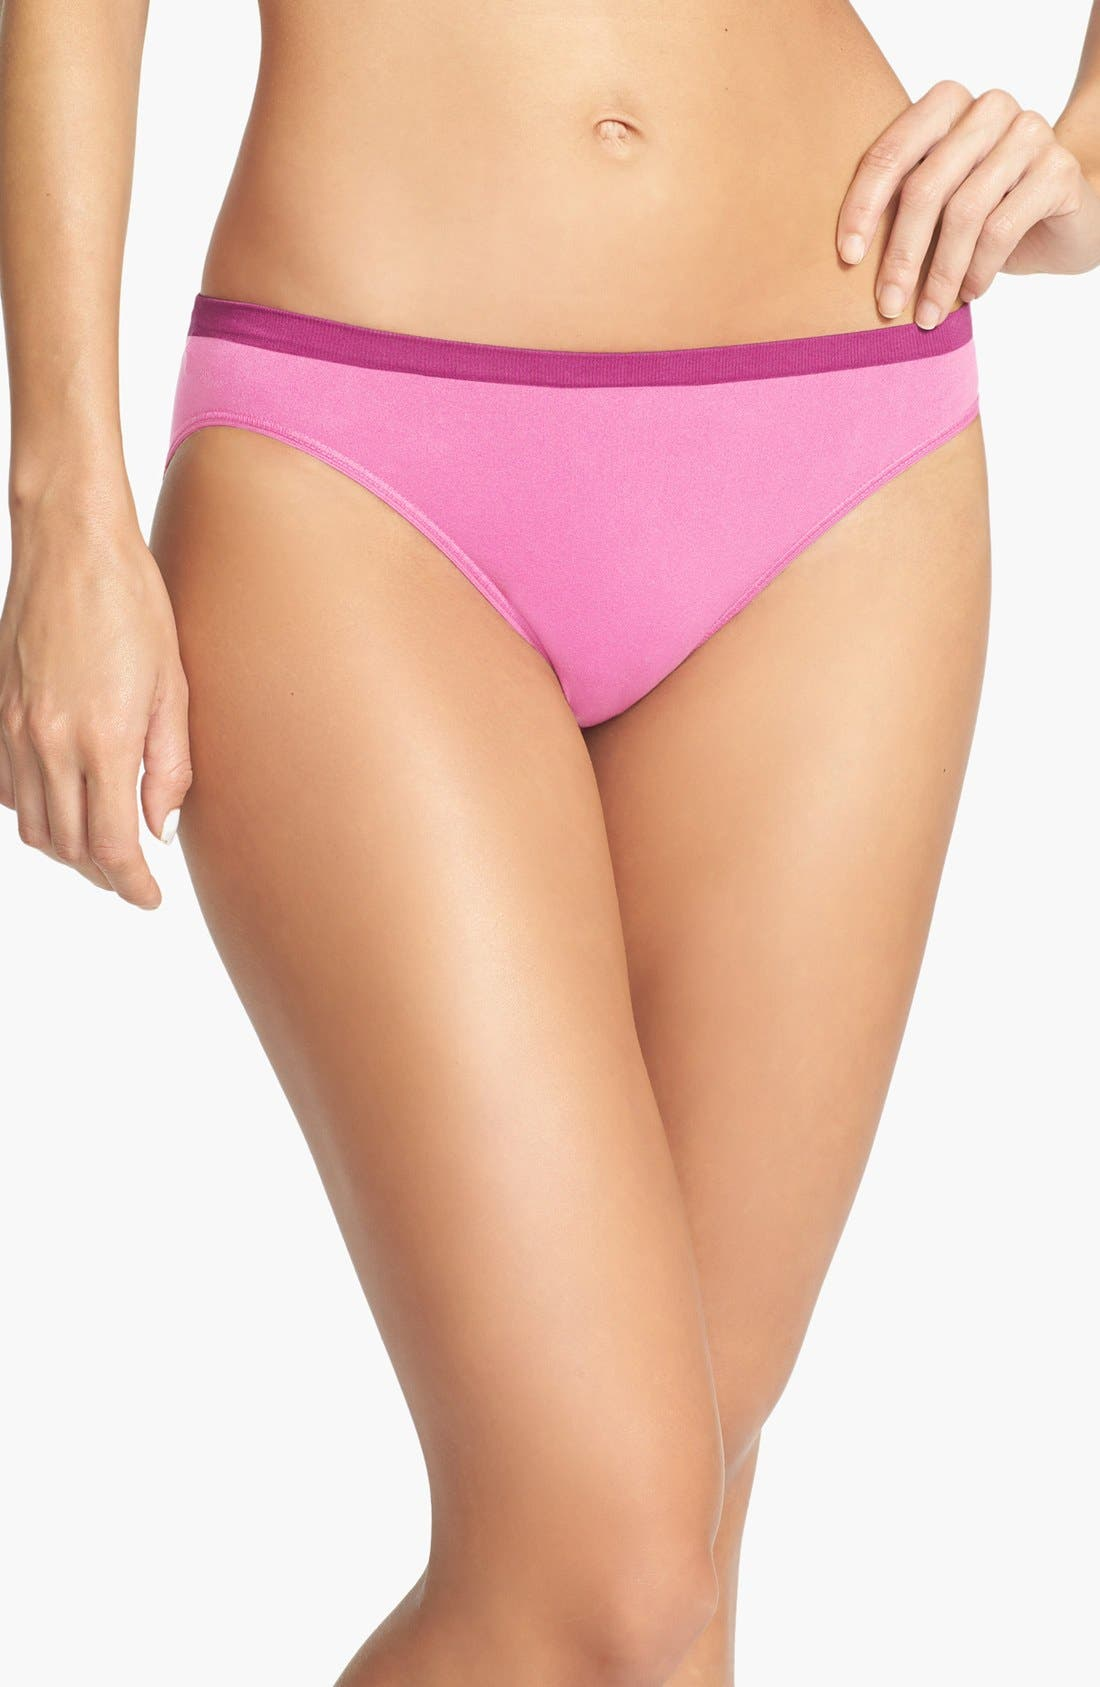 Main Image - Shimera Seamless Colorblock High Cut Briefs